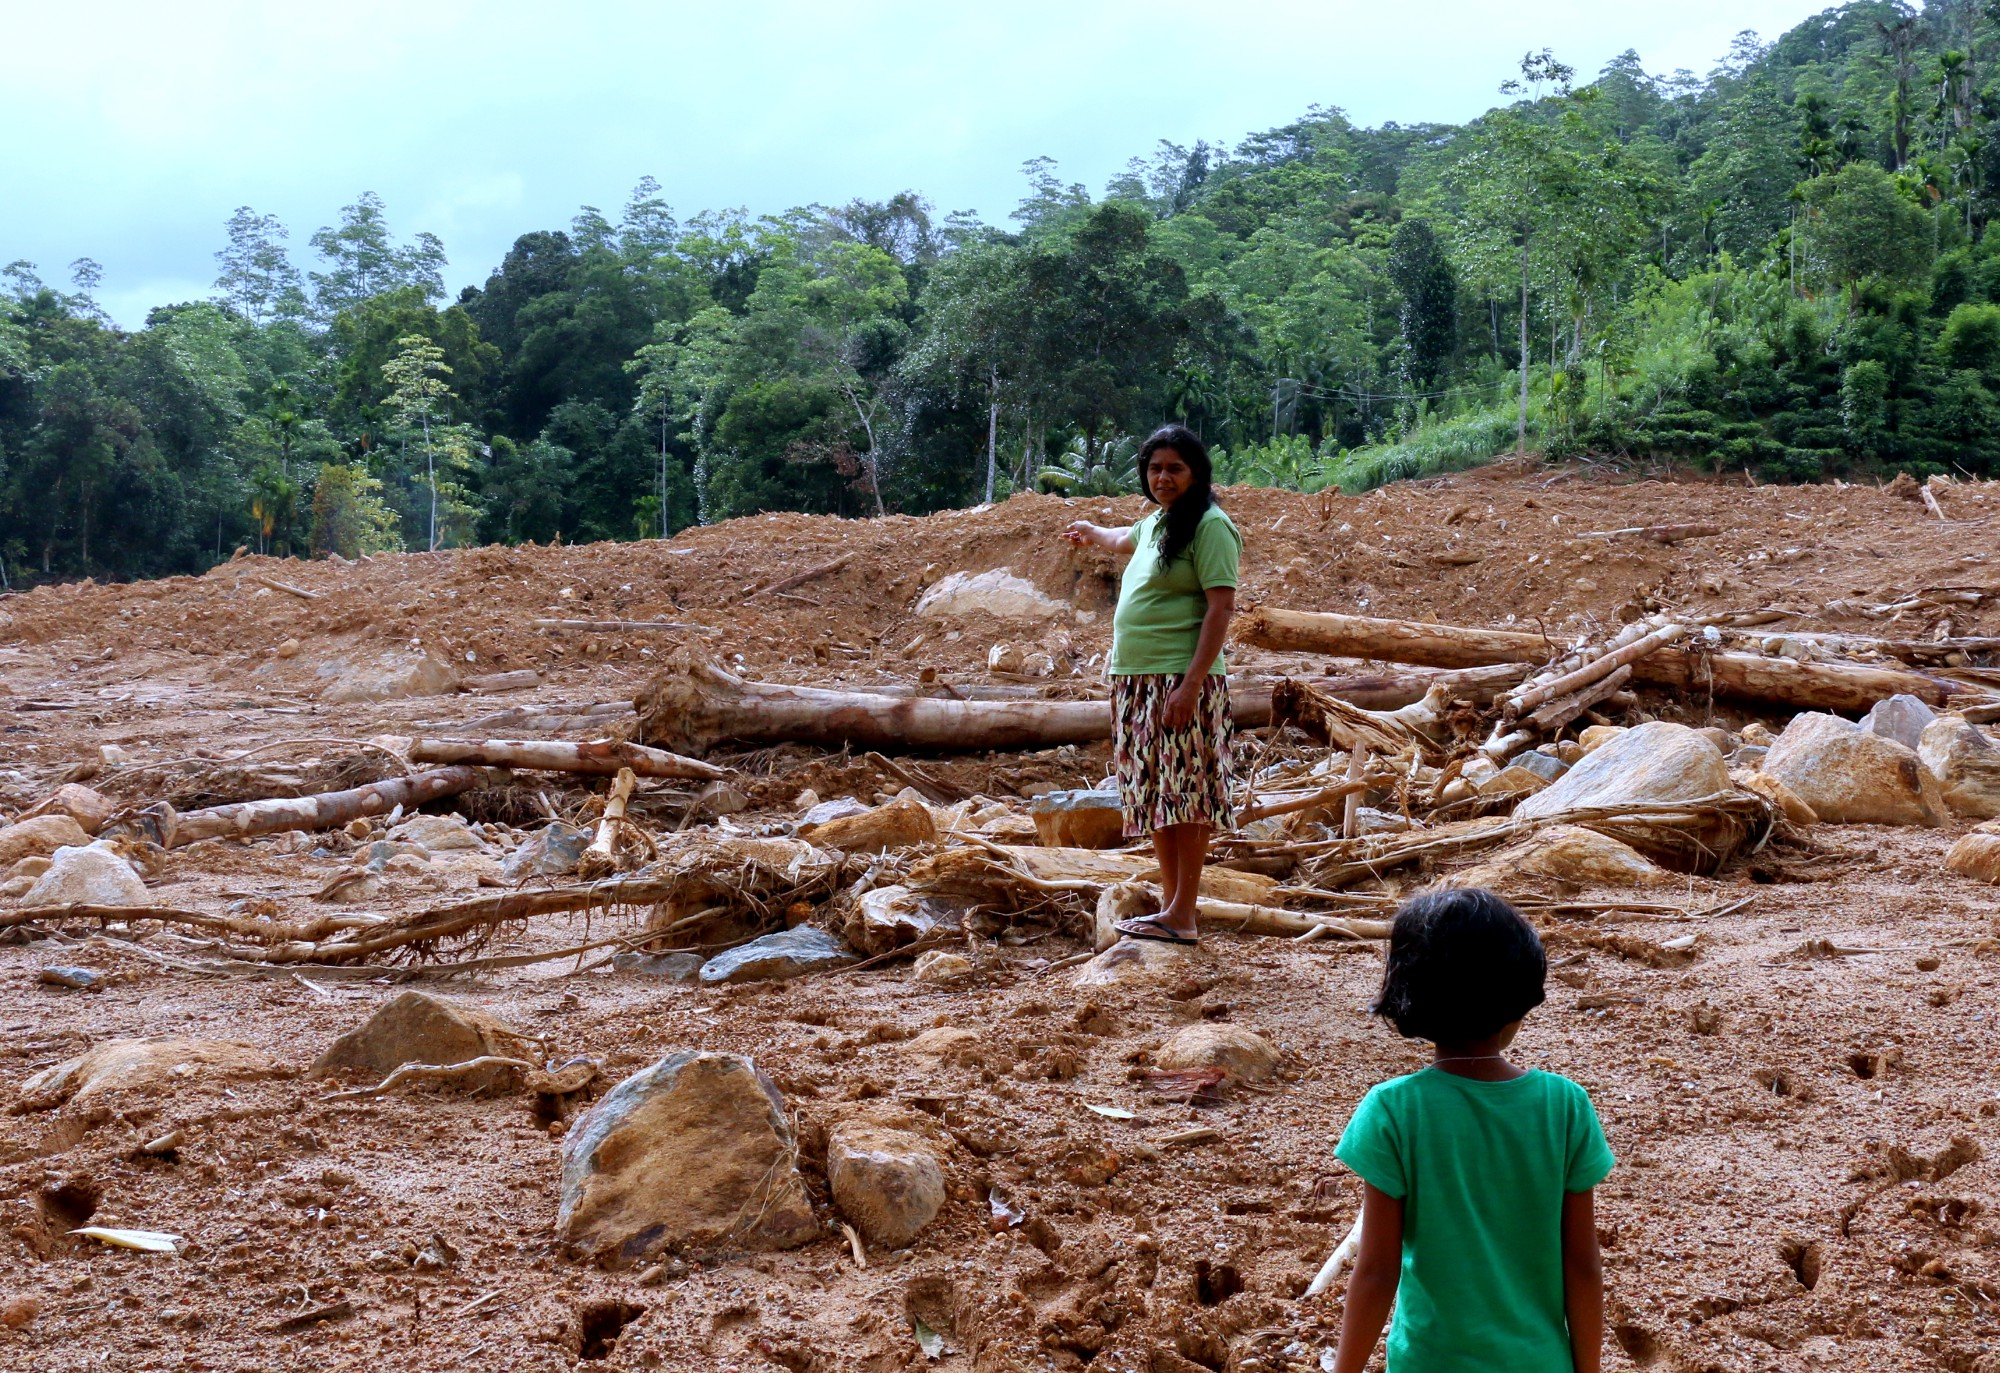 Sri Lanka's Food Production Hit By Extreme Drought Followed By Floods